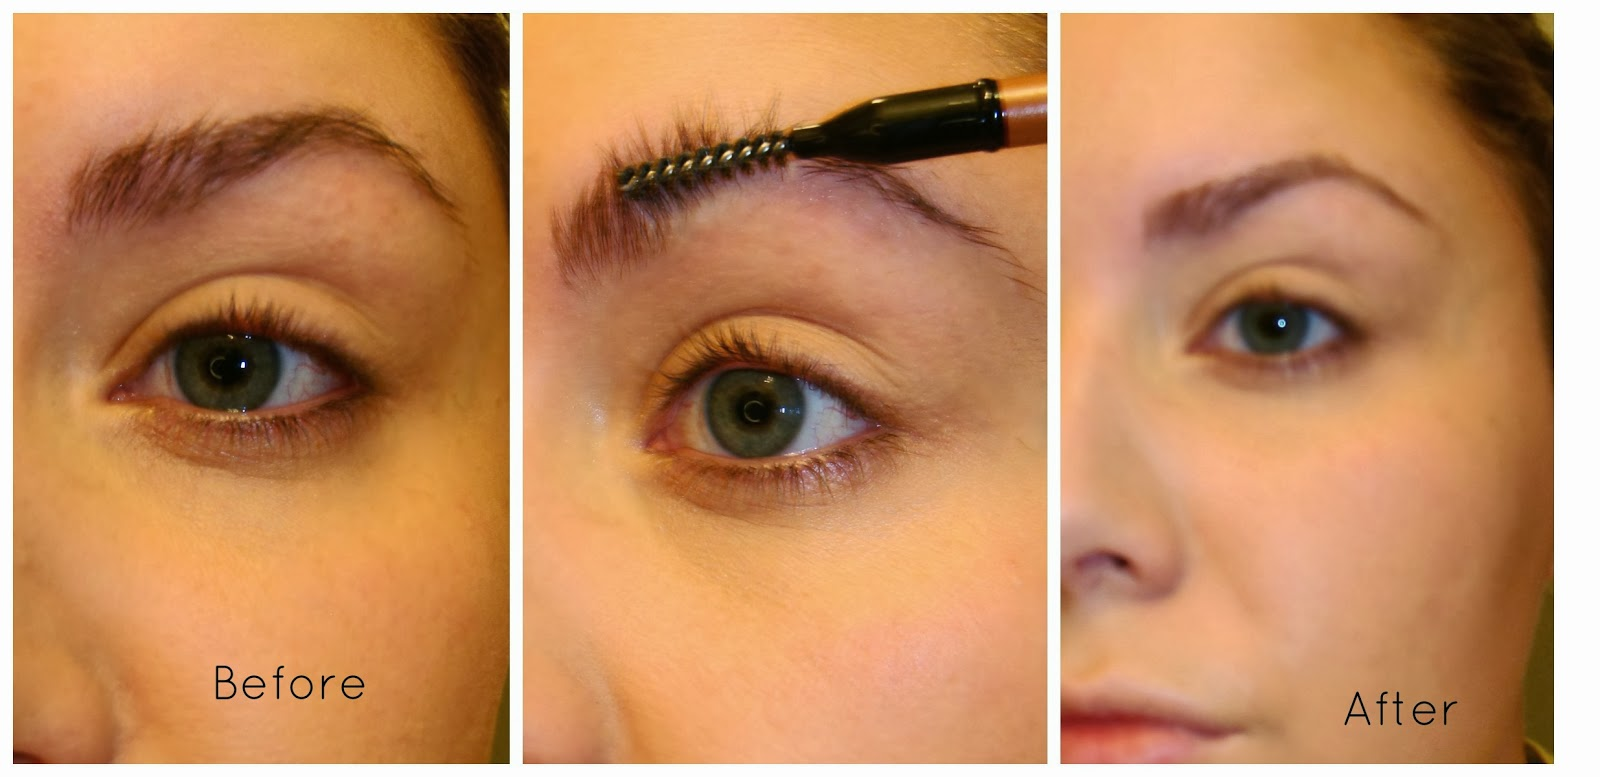 life and beauty: How To Trim Your Eyebrows (The Easy Way)